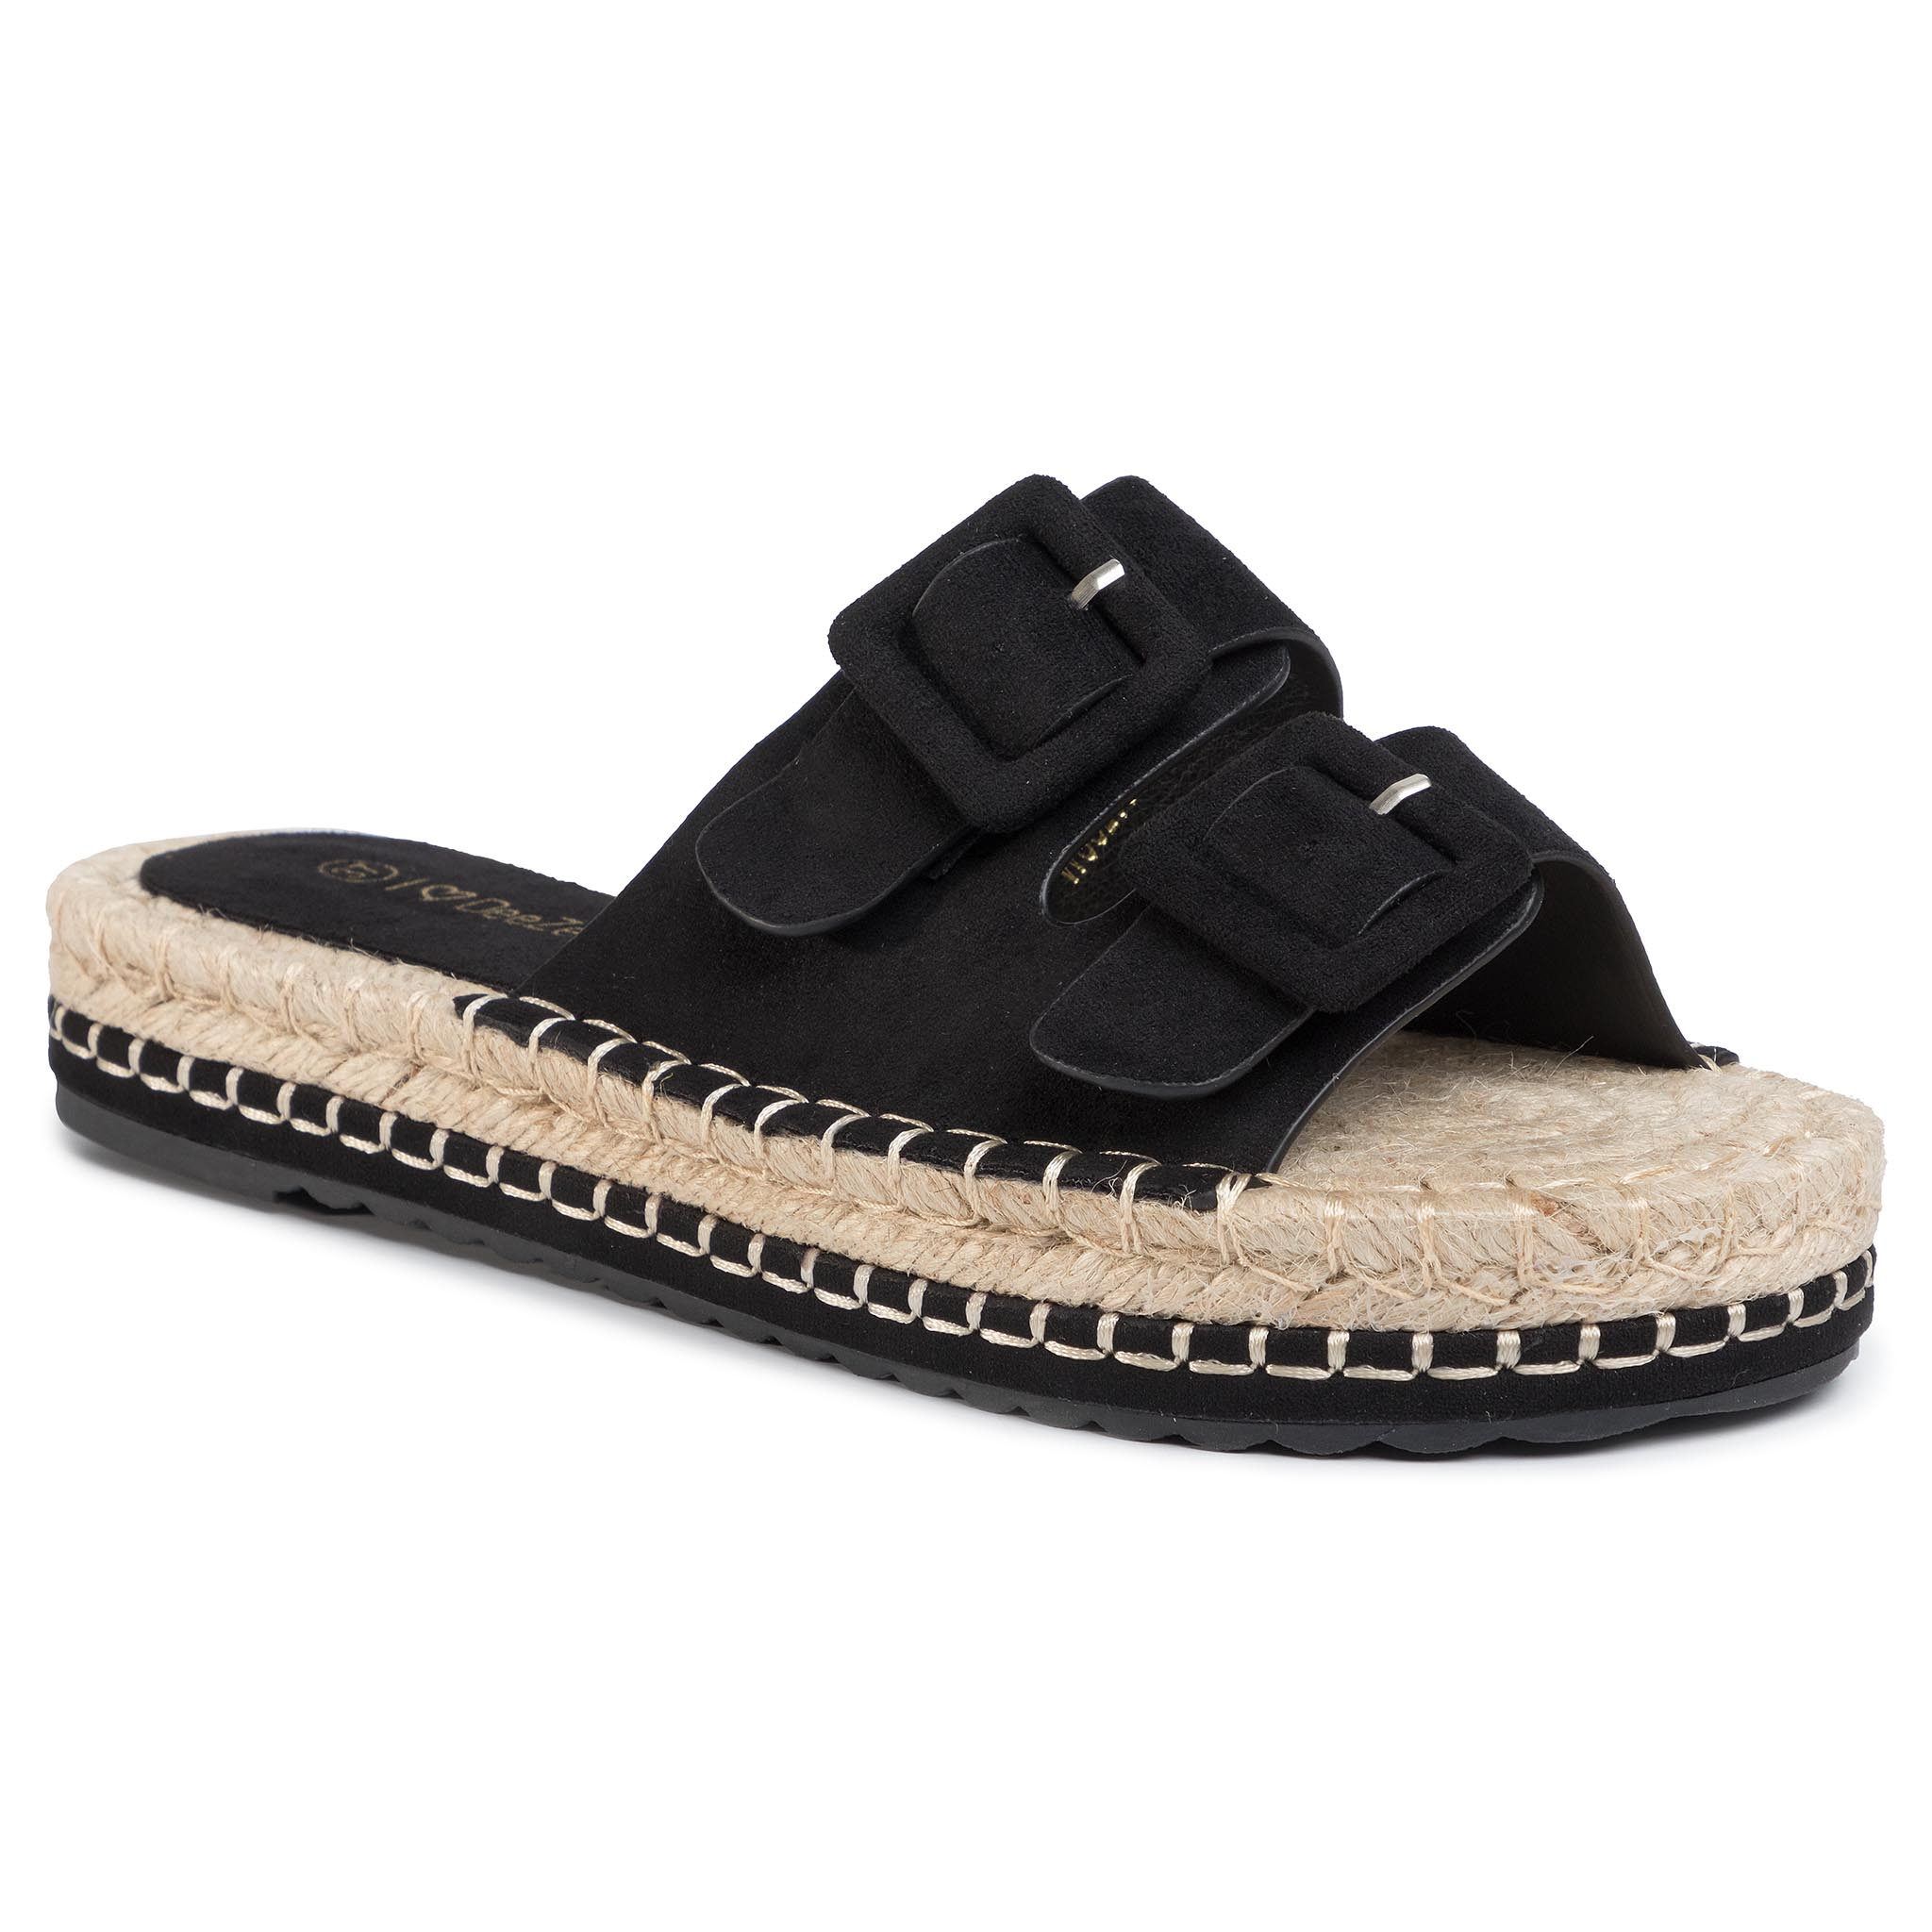 Espadrile Deezee - Wss20301-01 Black imagine epantofi.ro 2021